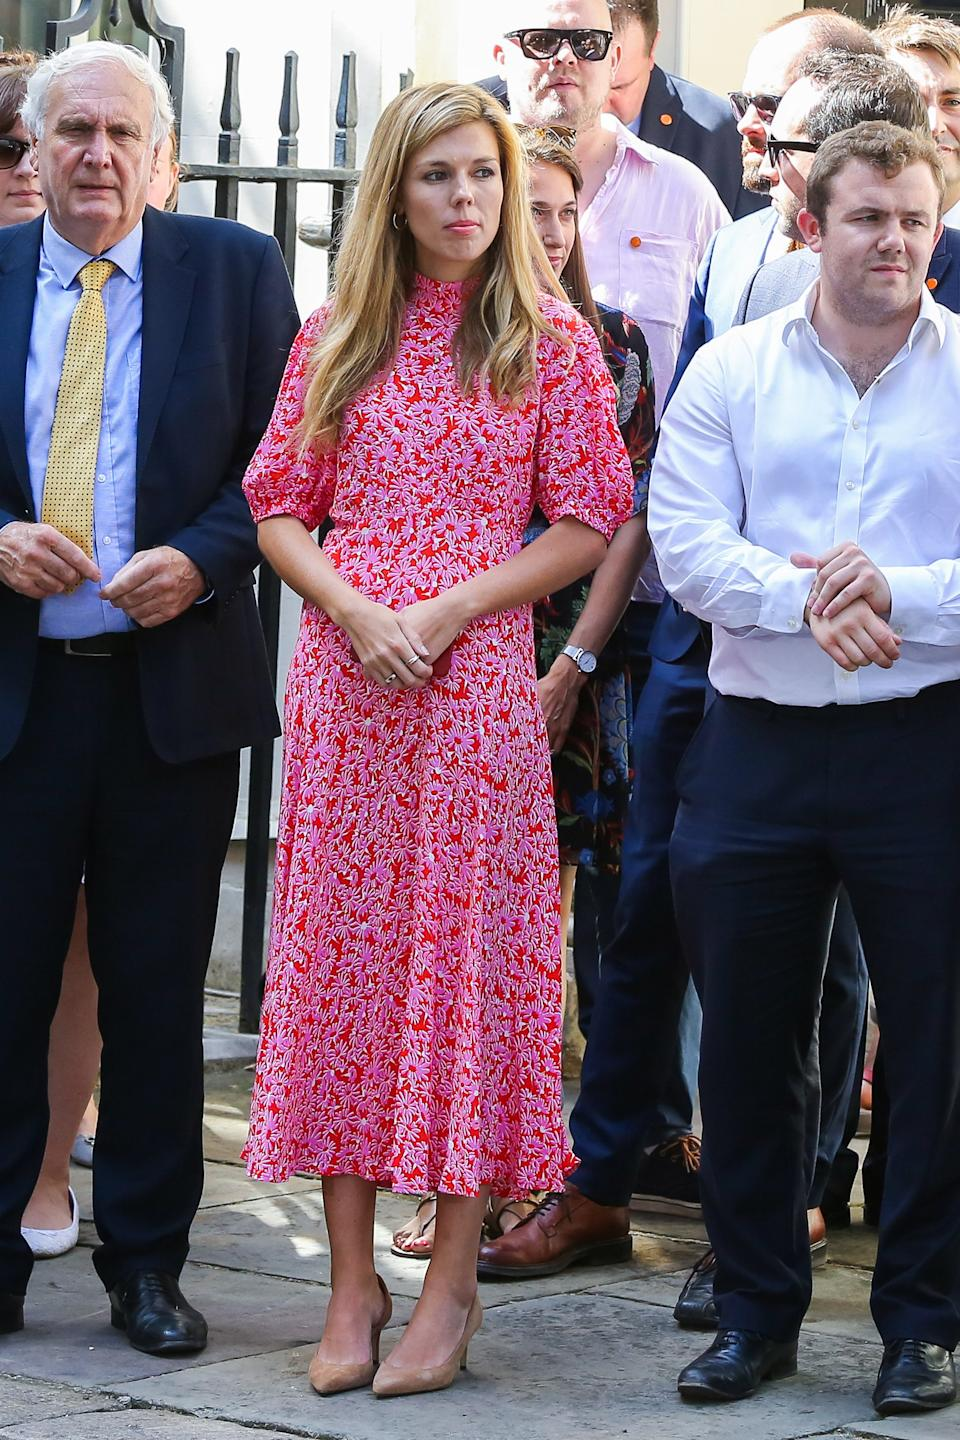 For her first public engagement, Carrie Symonds wowed in a £120 pink floral midi dress by British label, Ghost. Naturally, the dress sold out within minutes of her wearing it and Carrie even received the nod of approval from 'Good Morning Britain' presenter, Piers Morgan. <em>[Photo: Getty Images]</em>